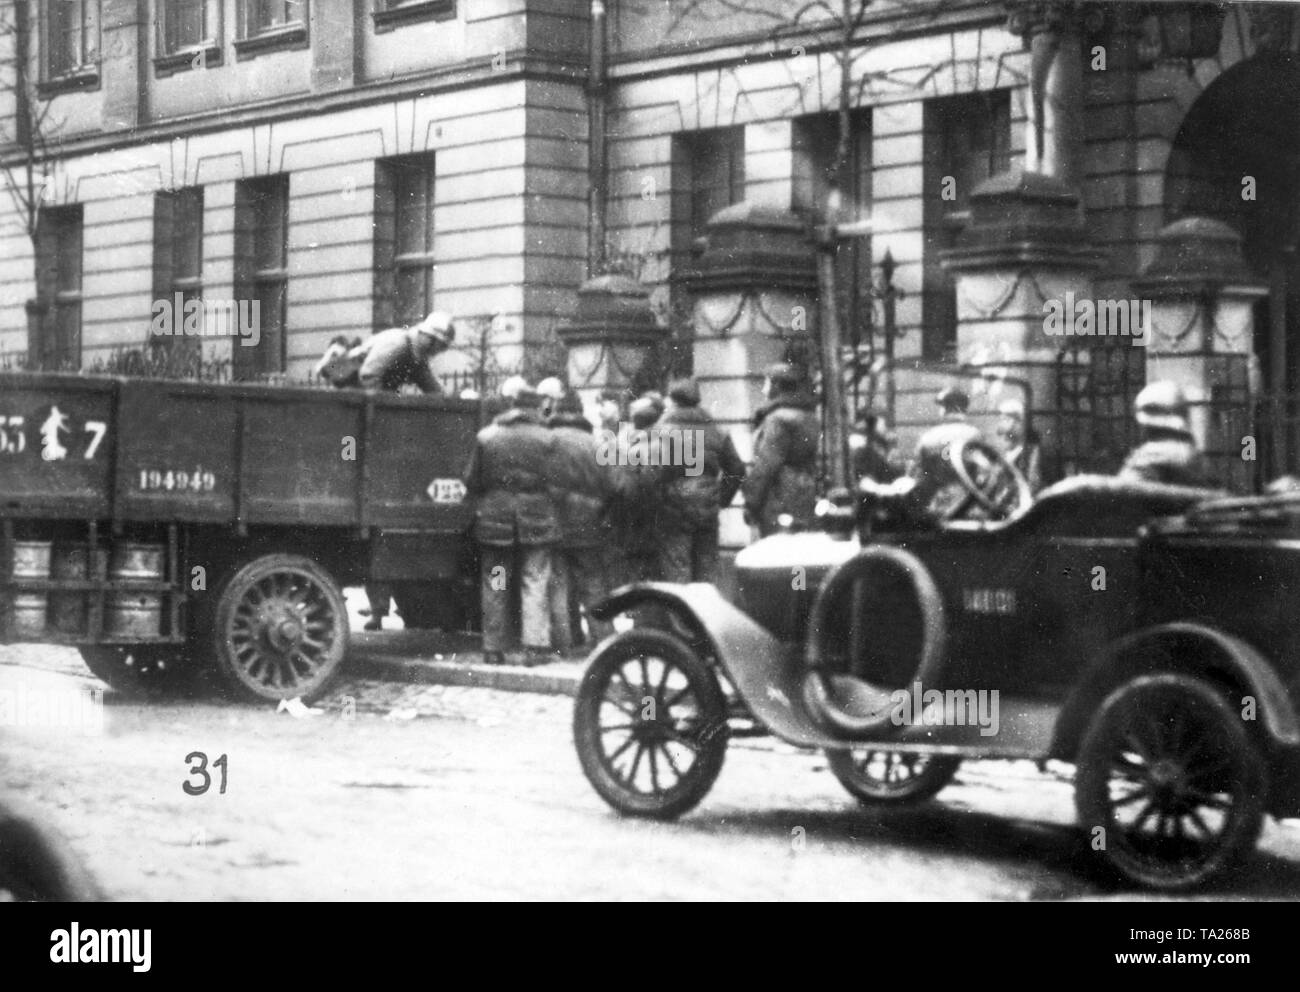 After soldiers of the French occupation forces have seized several things in the barracks of the Sicherheitspolizei (security police) in the Lindemannstrasse, the booty is loaded on a truck and transported away (undated photo). - Stock Image